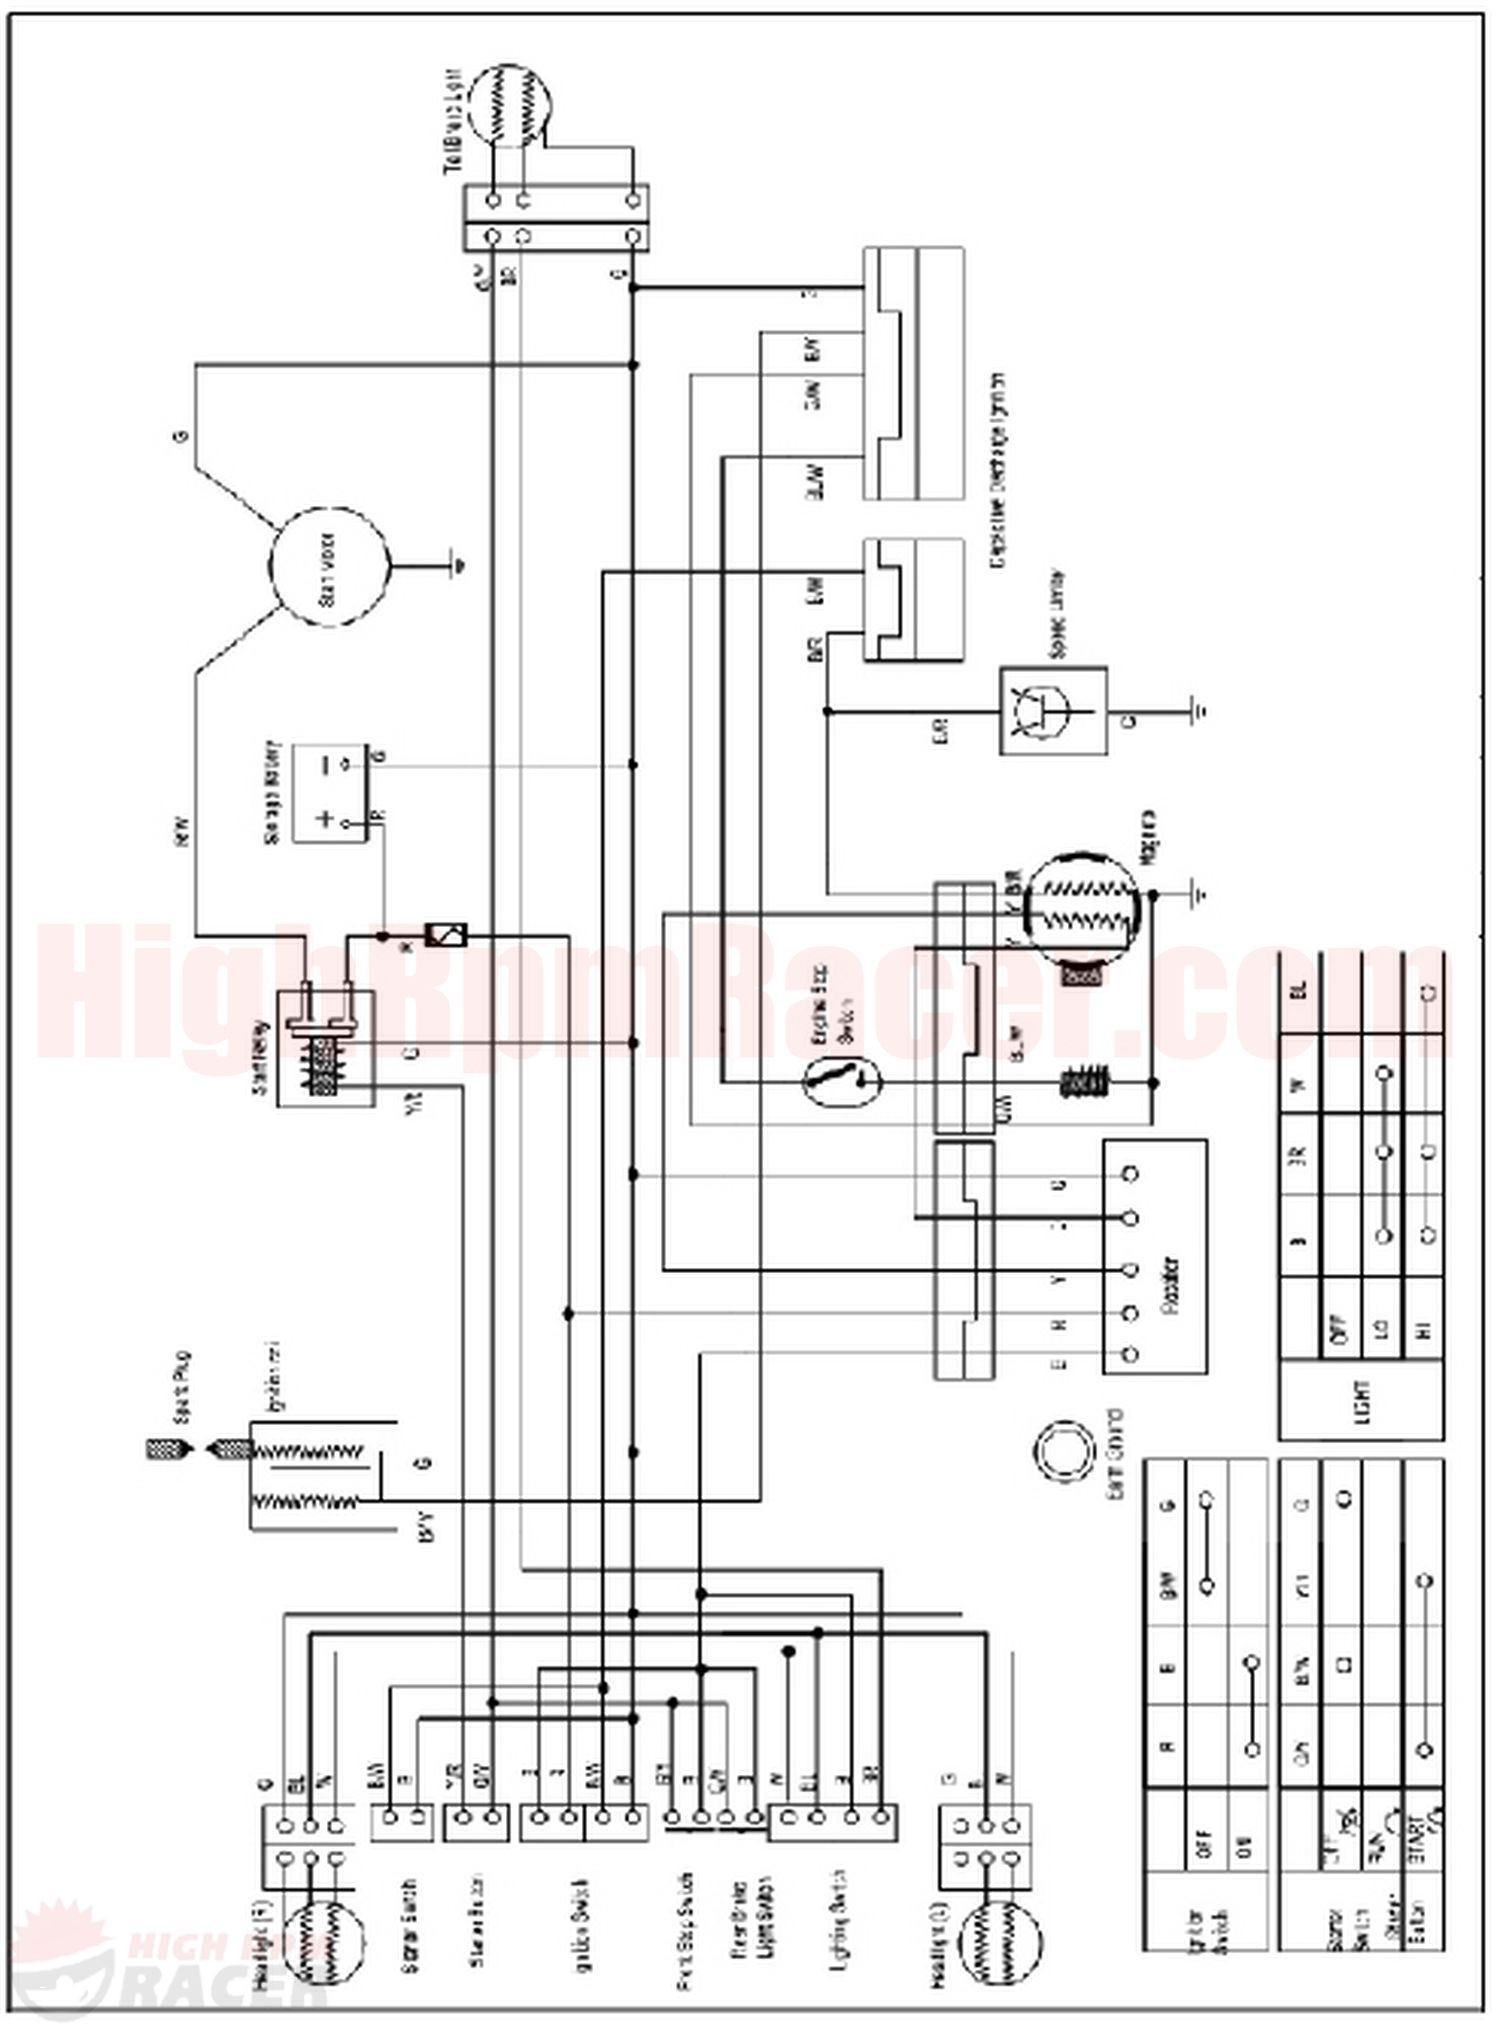 110Cc Atv Starter Solenoid Wiring Diagram from wholefoodsonabudget.com